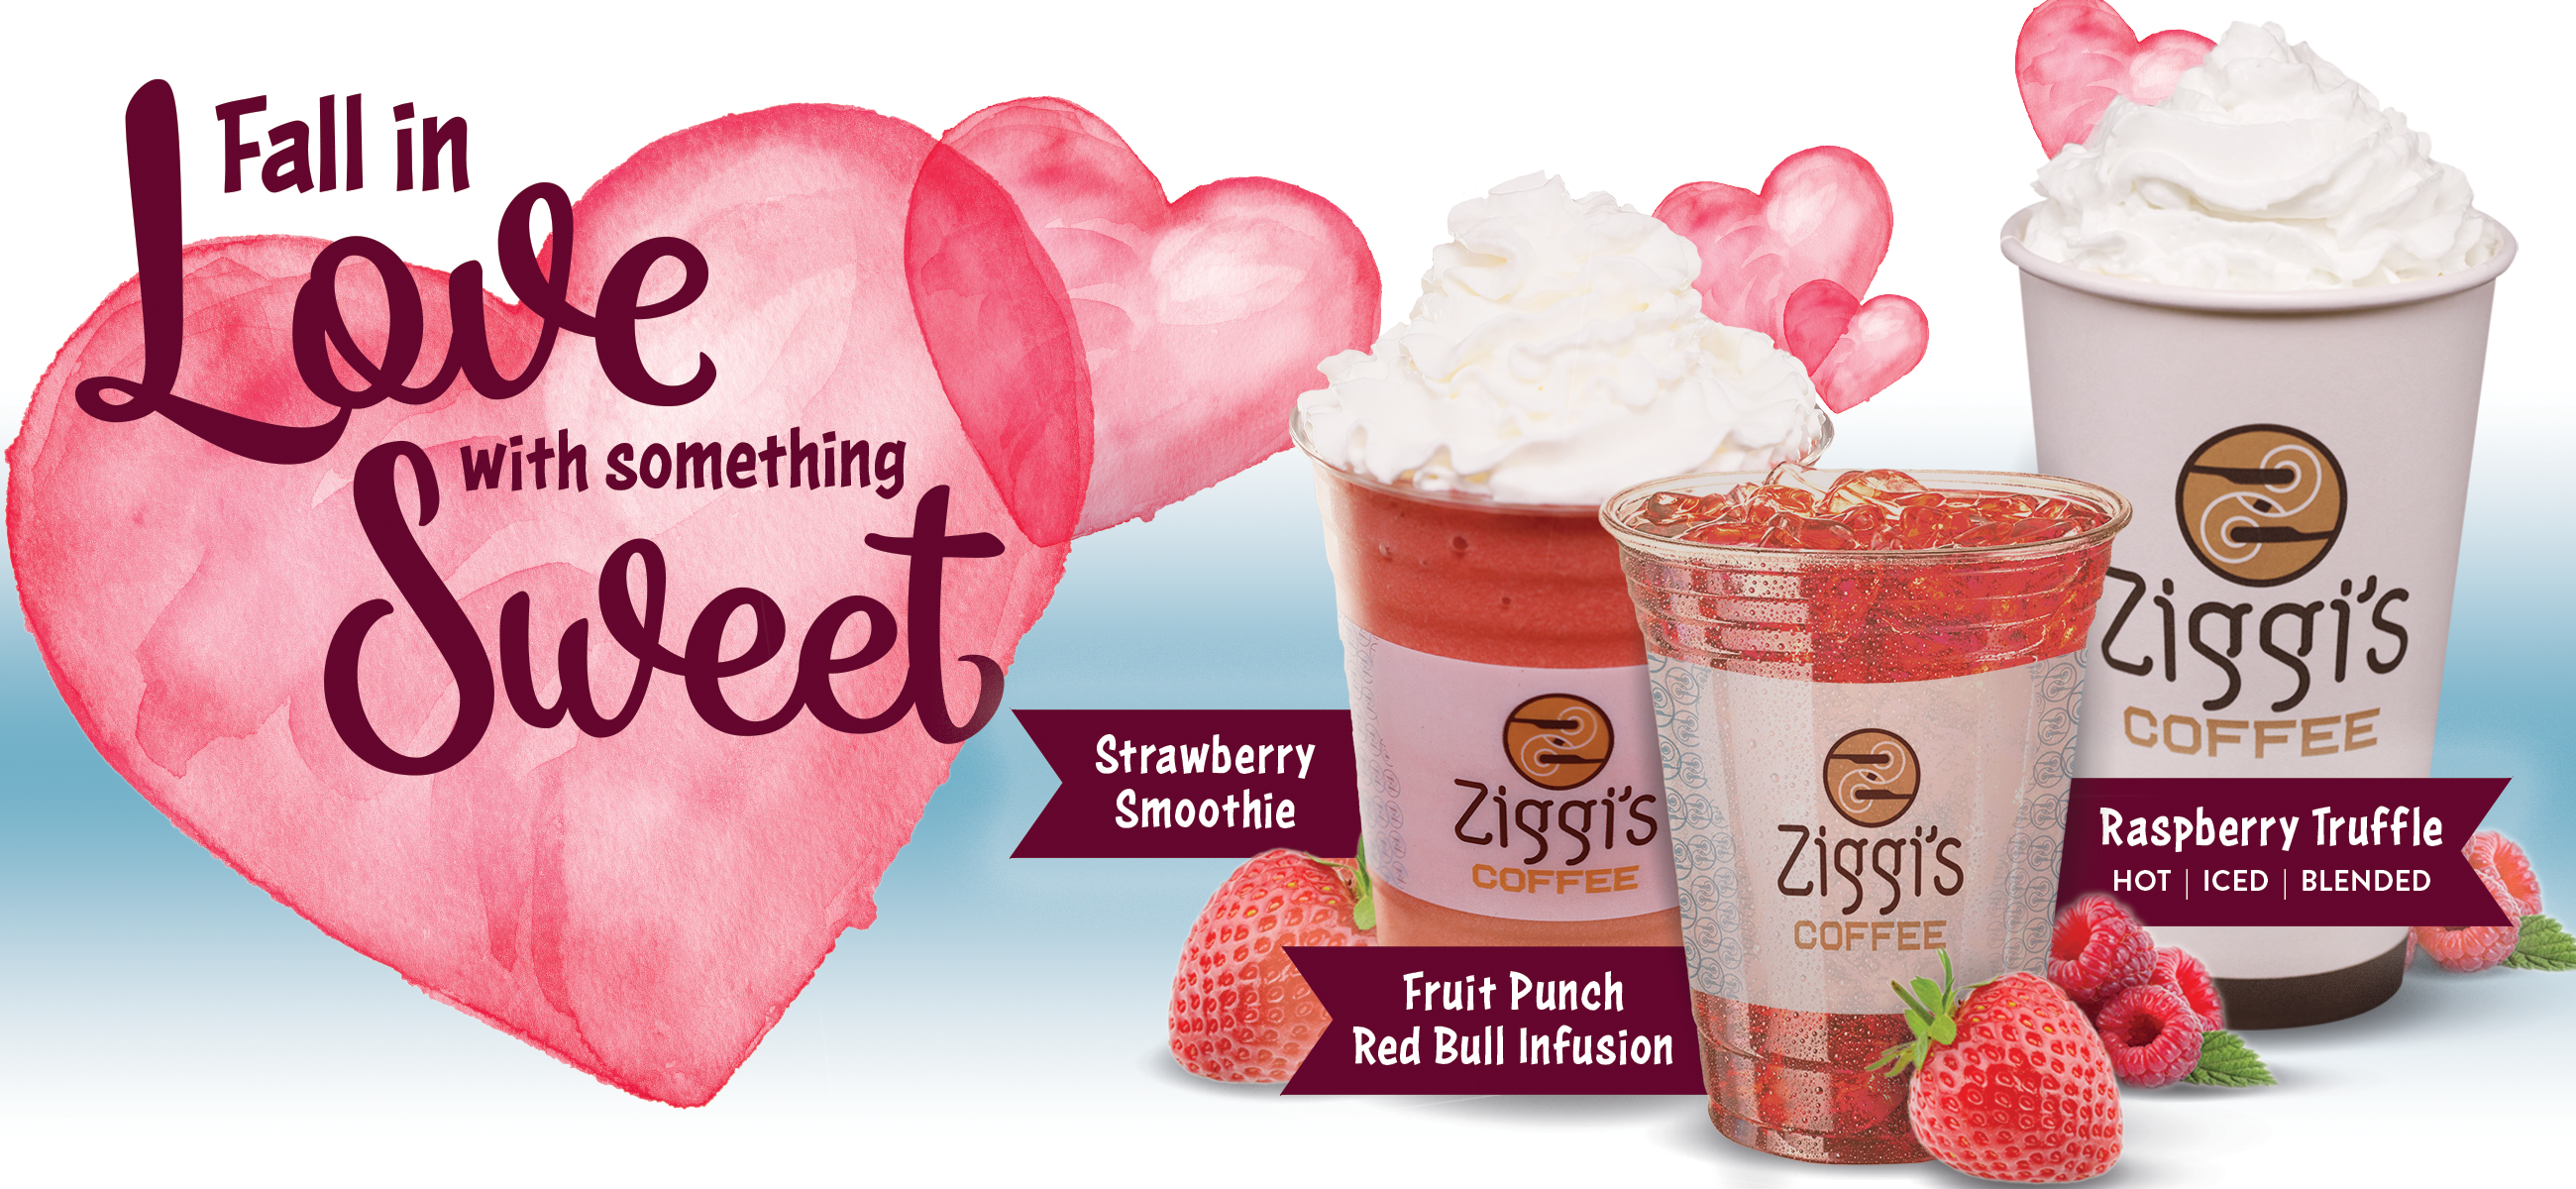 Fall in love with something sweet at Ziggi's Coffee - Photo of a Raspberry Truffle (hot, iced or blended), Fruit Punch Red Bull Infusion, and Strawberry Smoothie